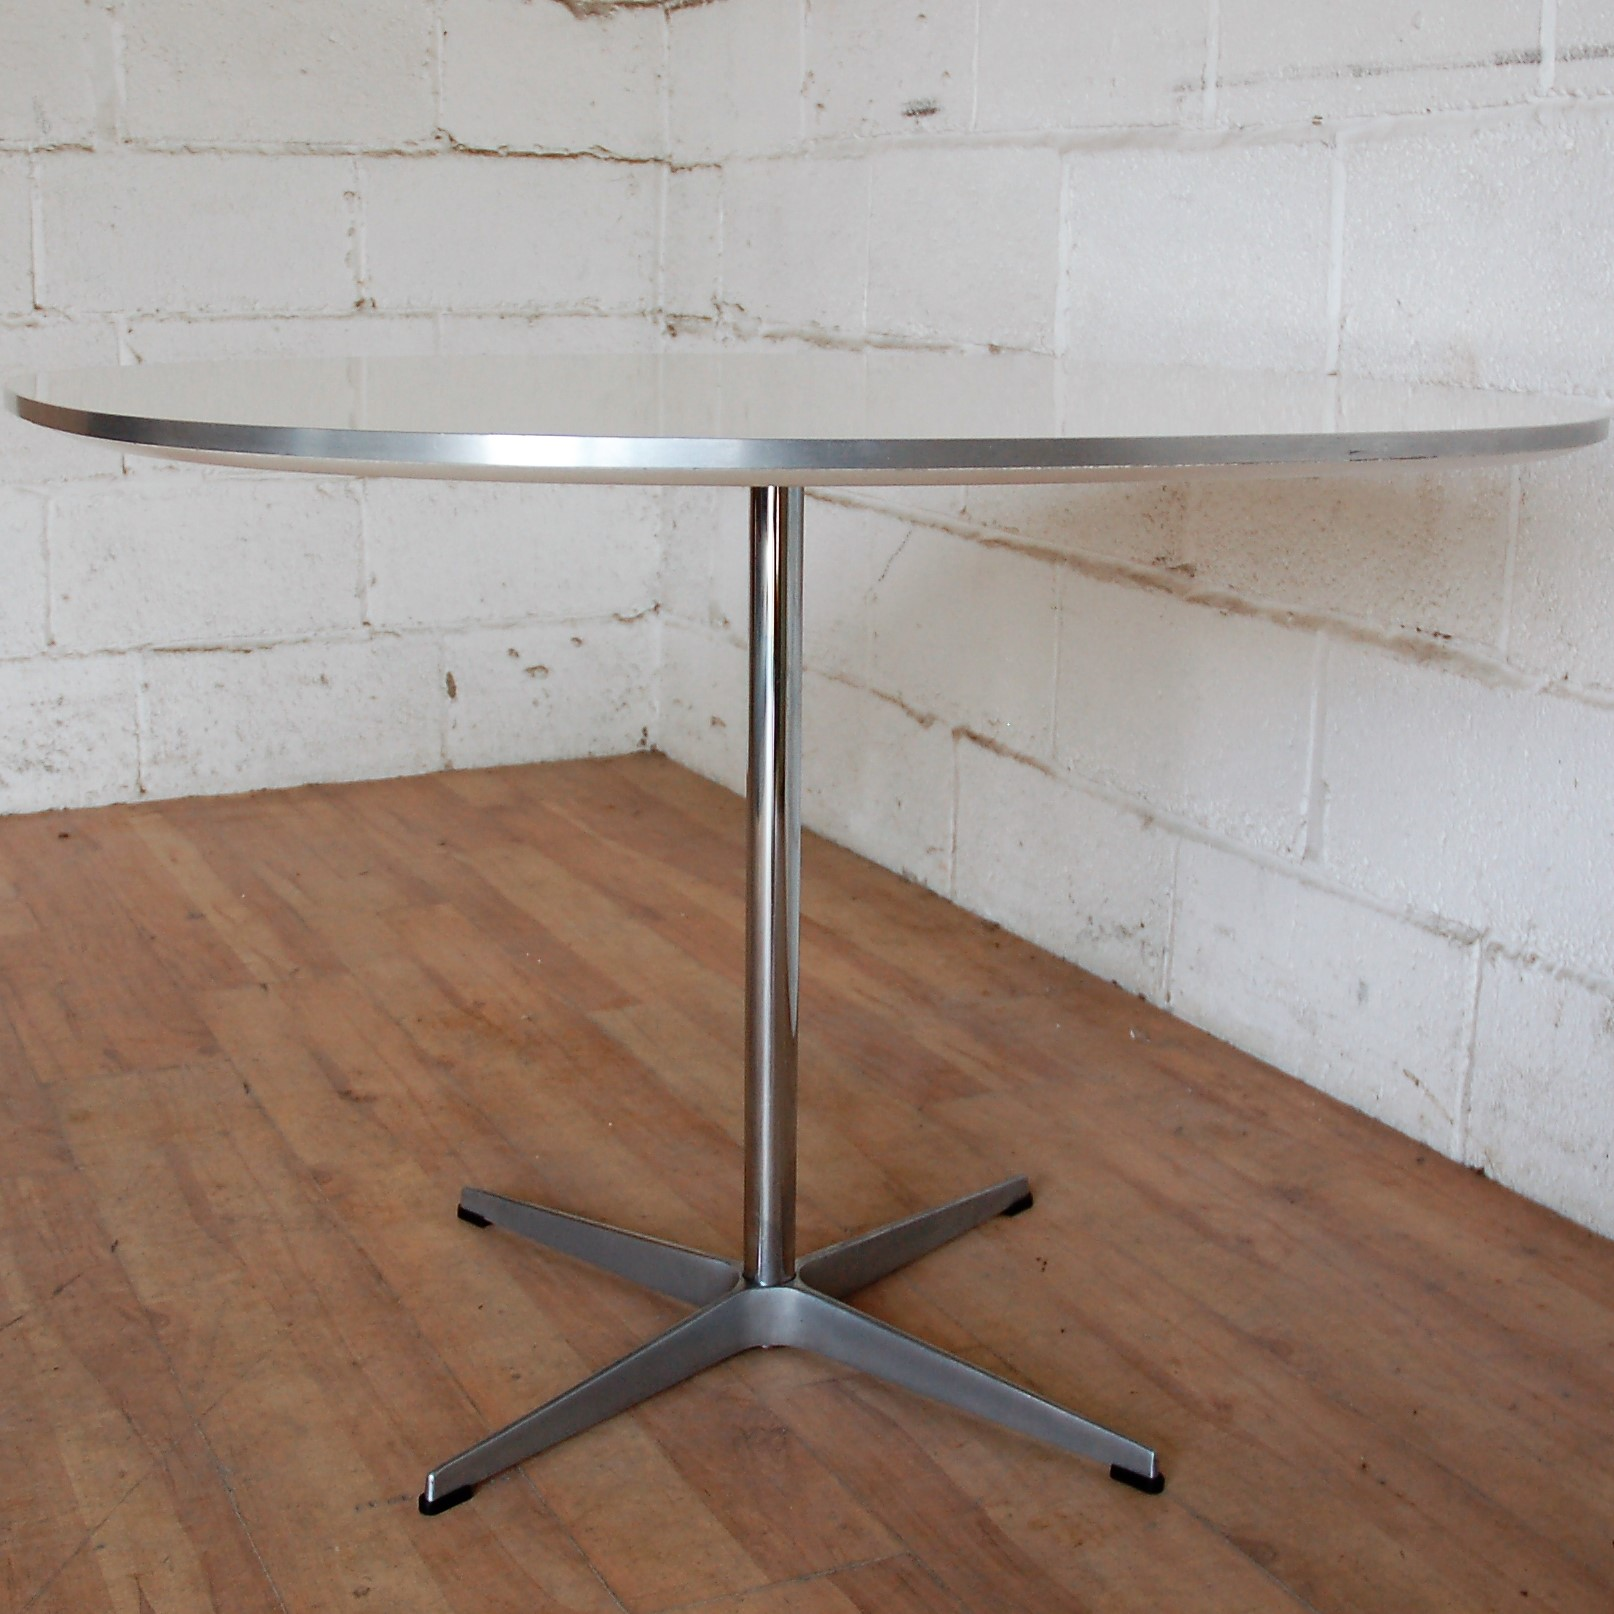 Fritz Hansen Super Circular Table 100cmdia A603 Arne Jacobsen 15031